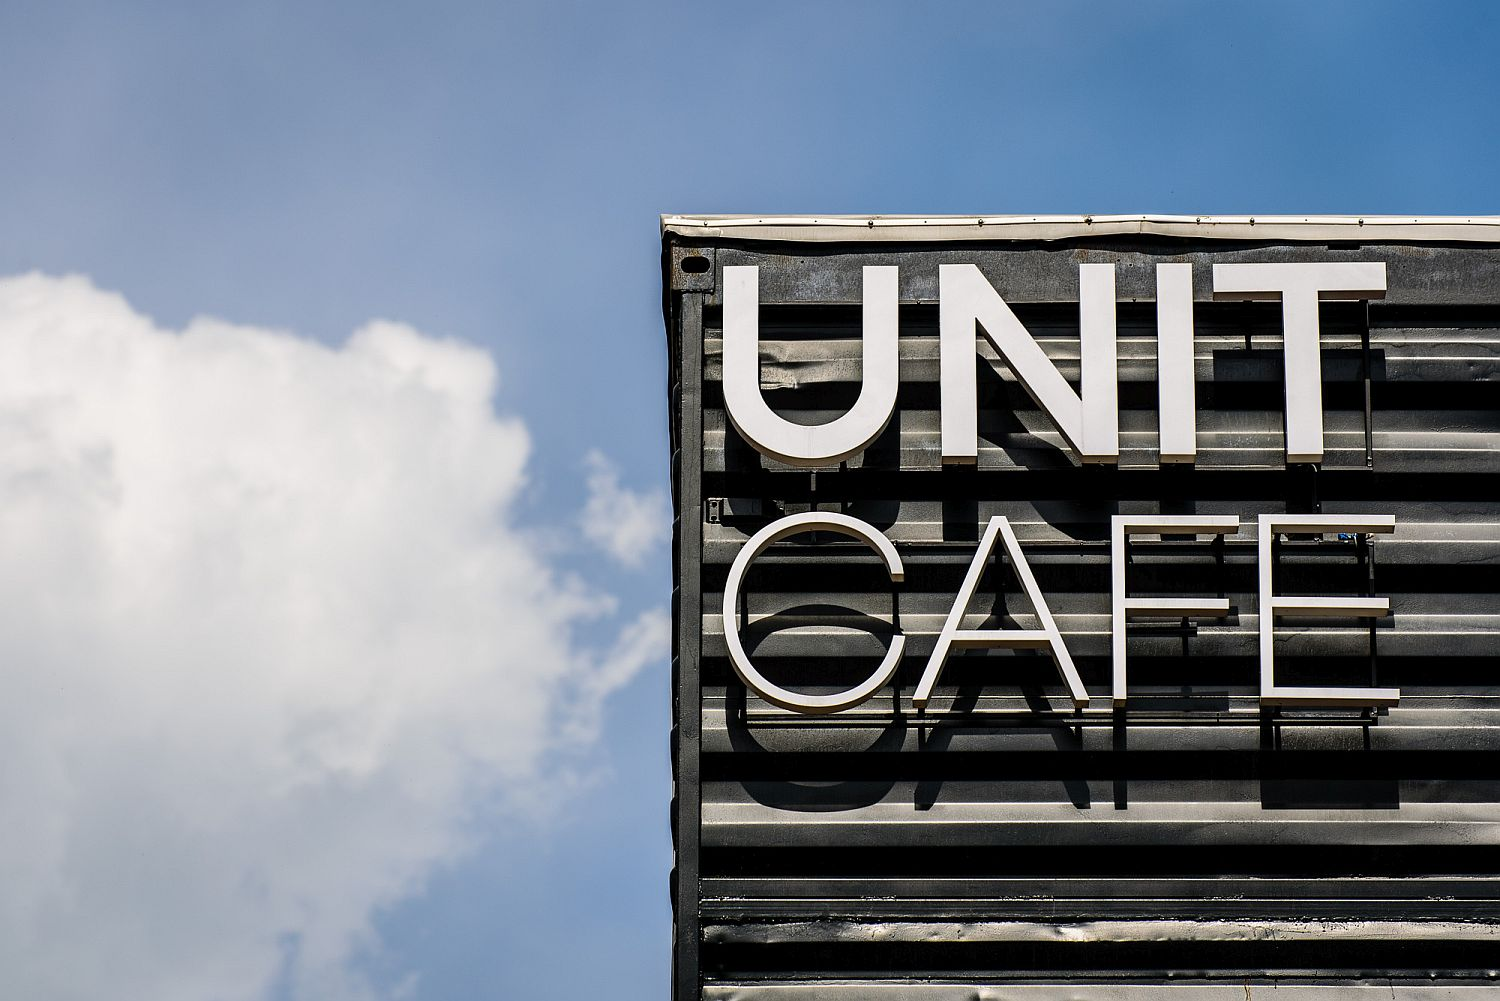 Exterior of the Unit Cafe